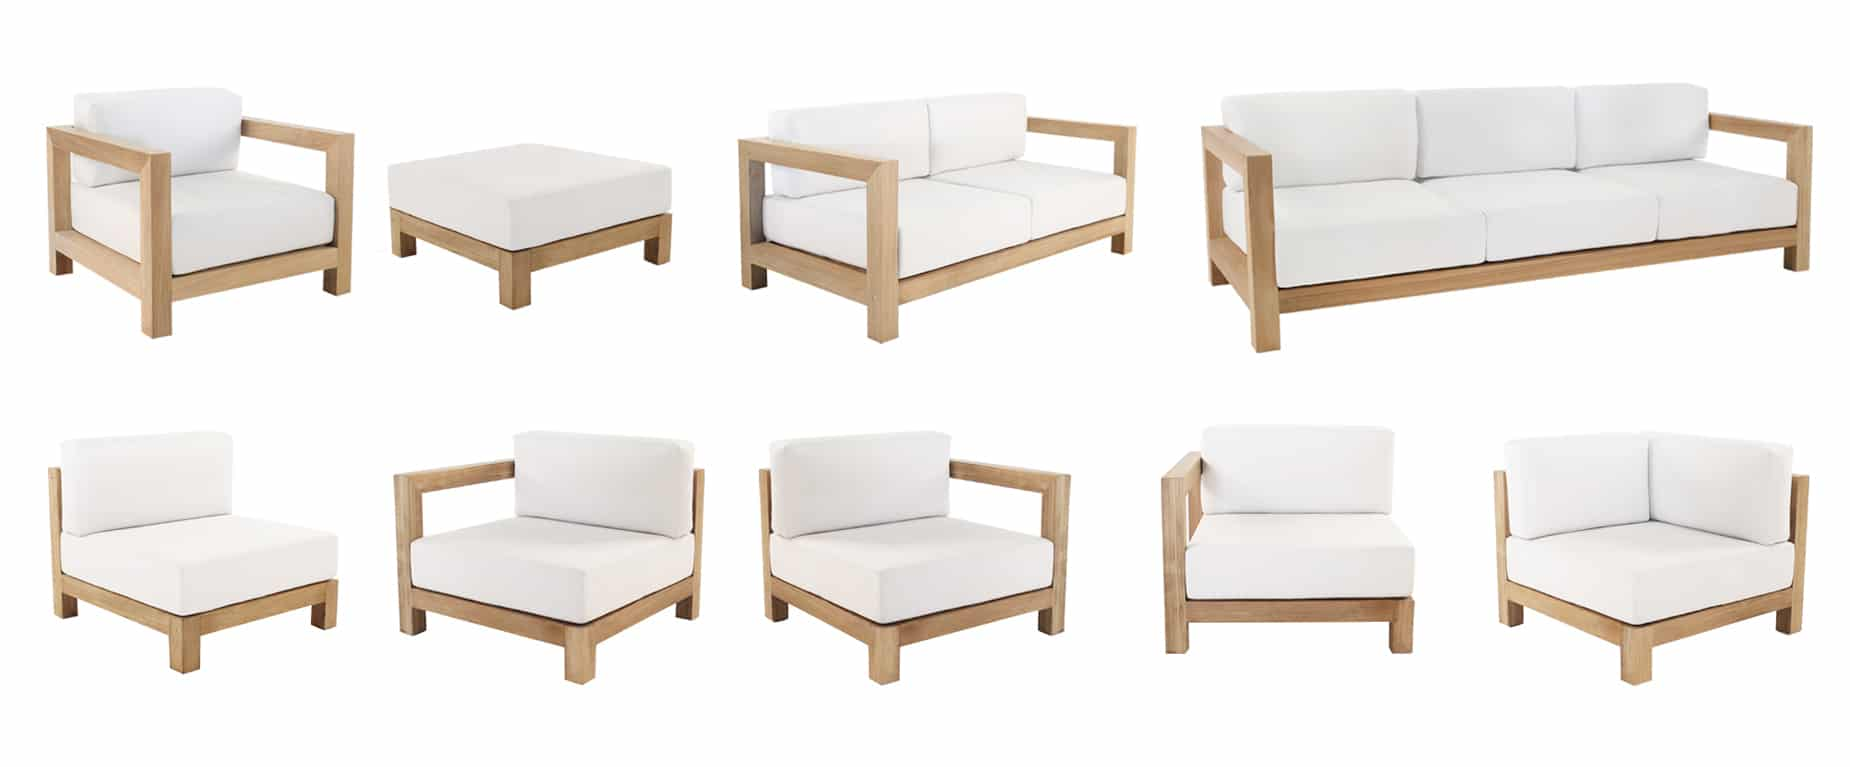 Ibiza Teak Furniture Pieces